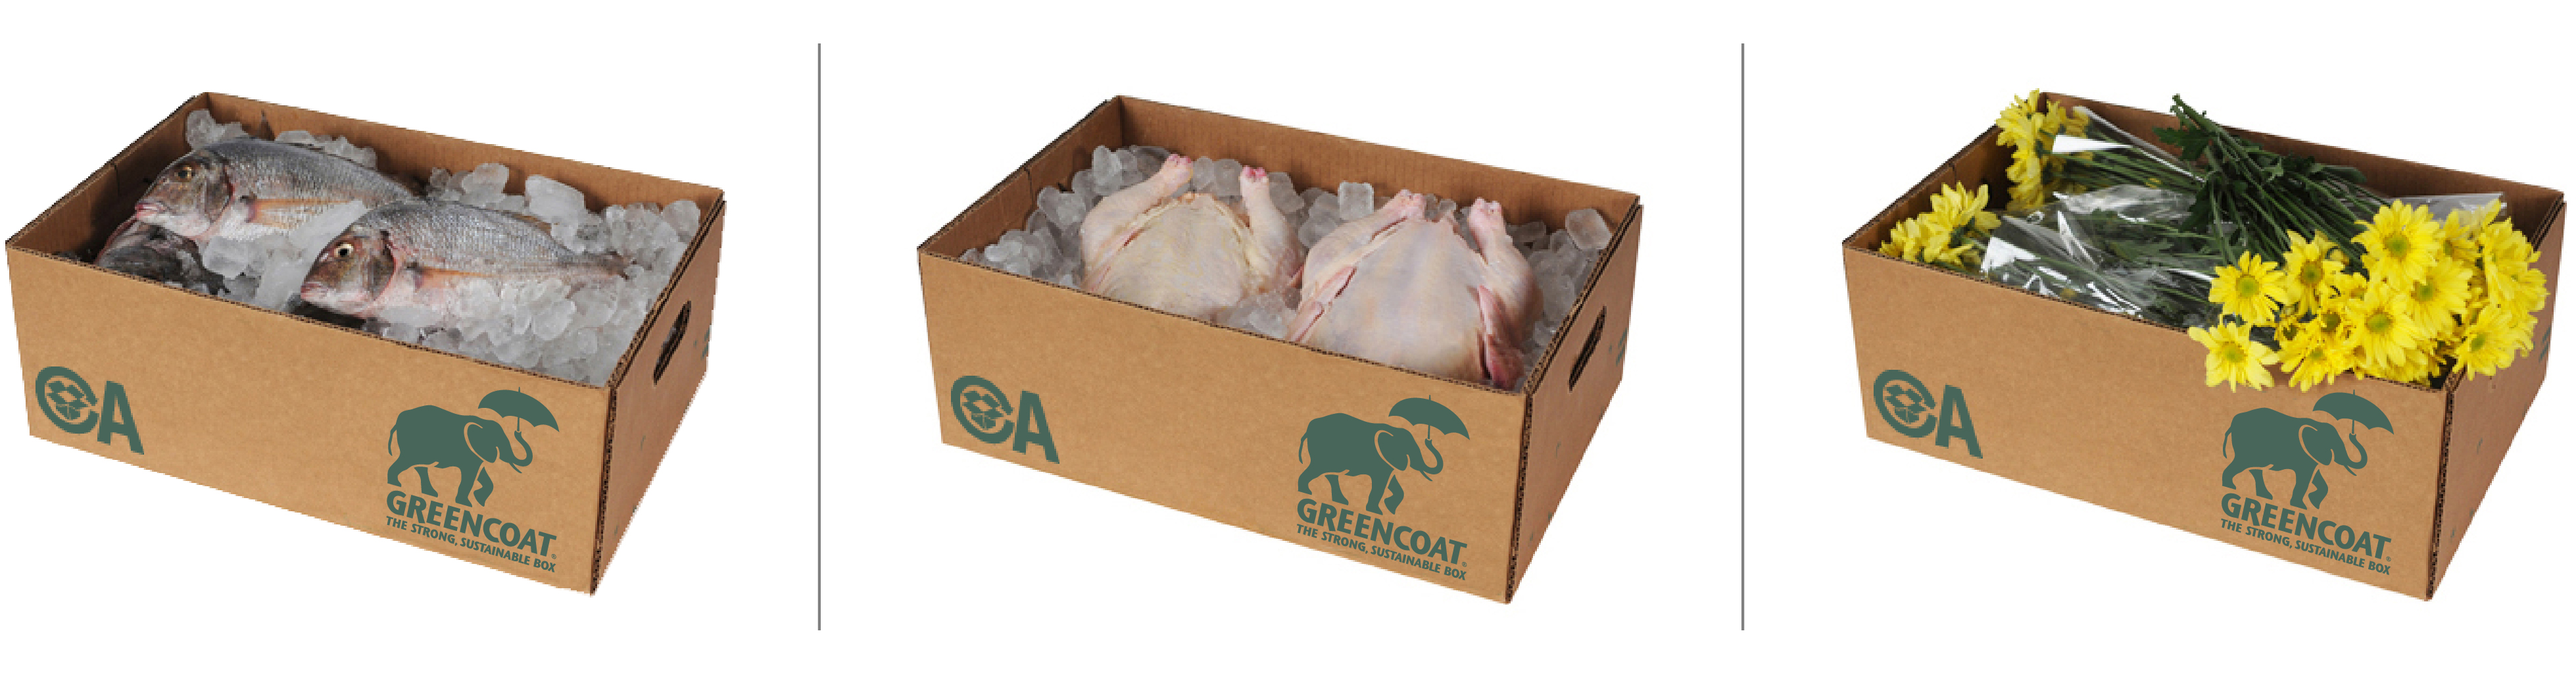 Greencoat Boxes, with fish, poultry and flowers